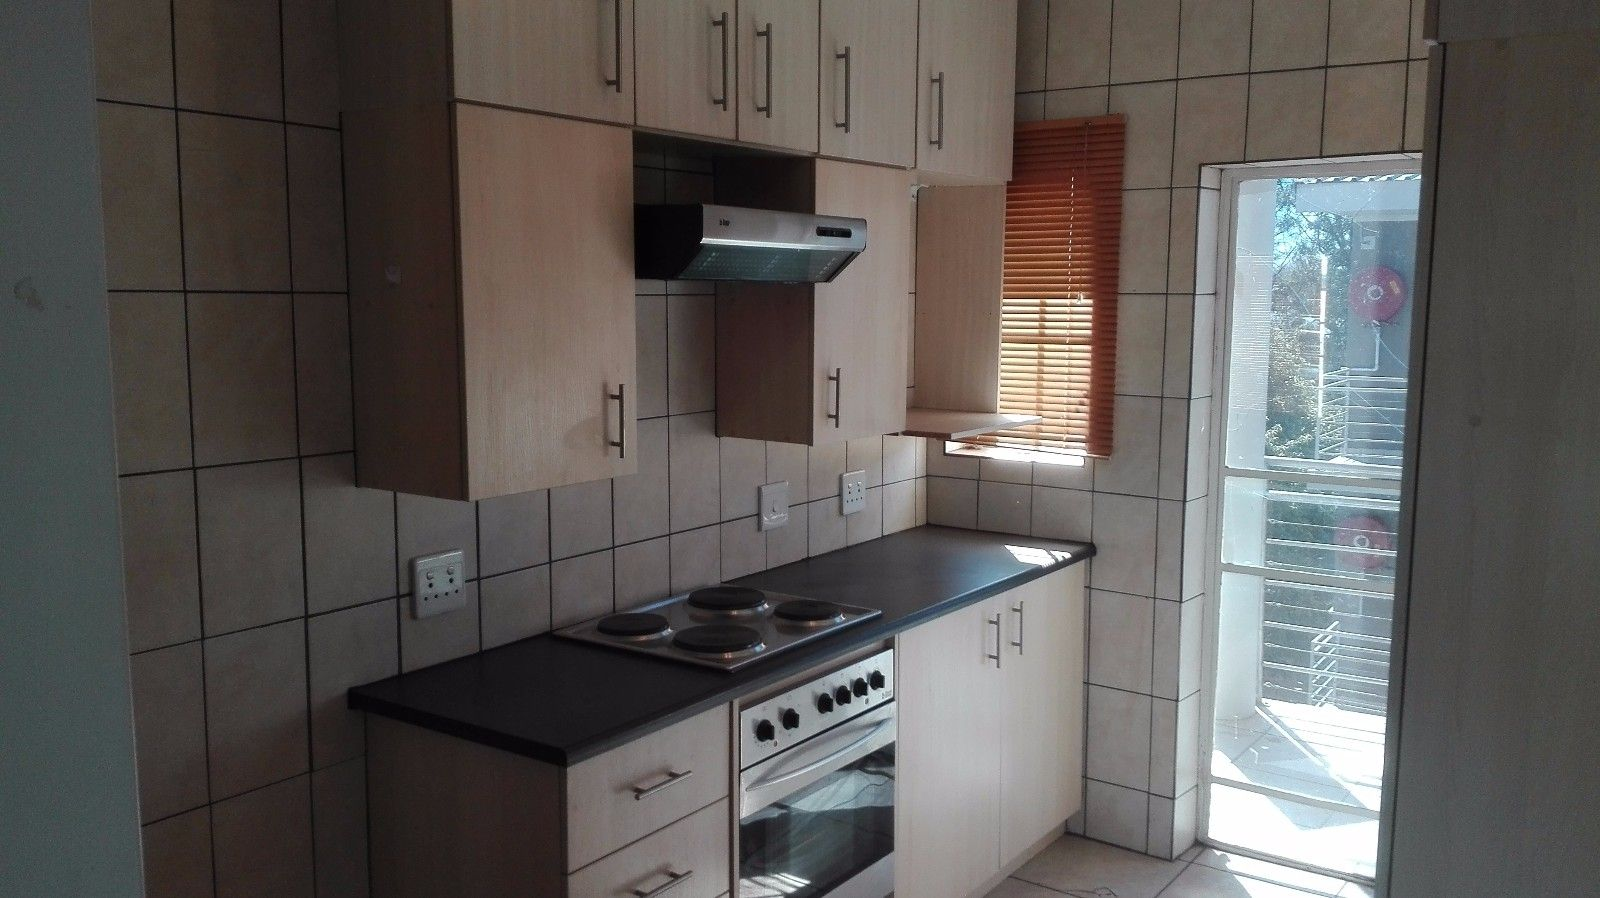 Potchefstroom Central property for sale. Ref No: 13381094. Picture no 10